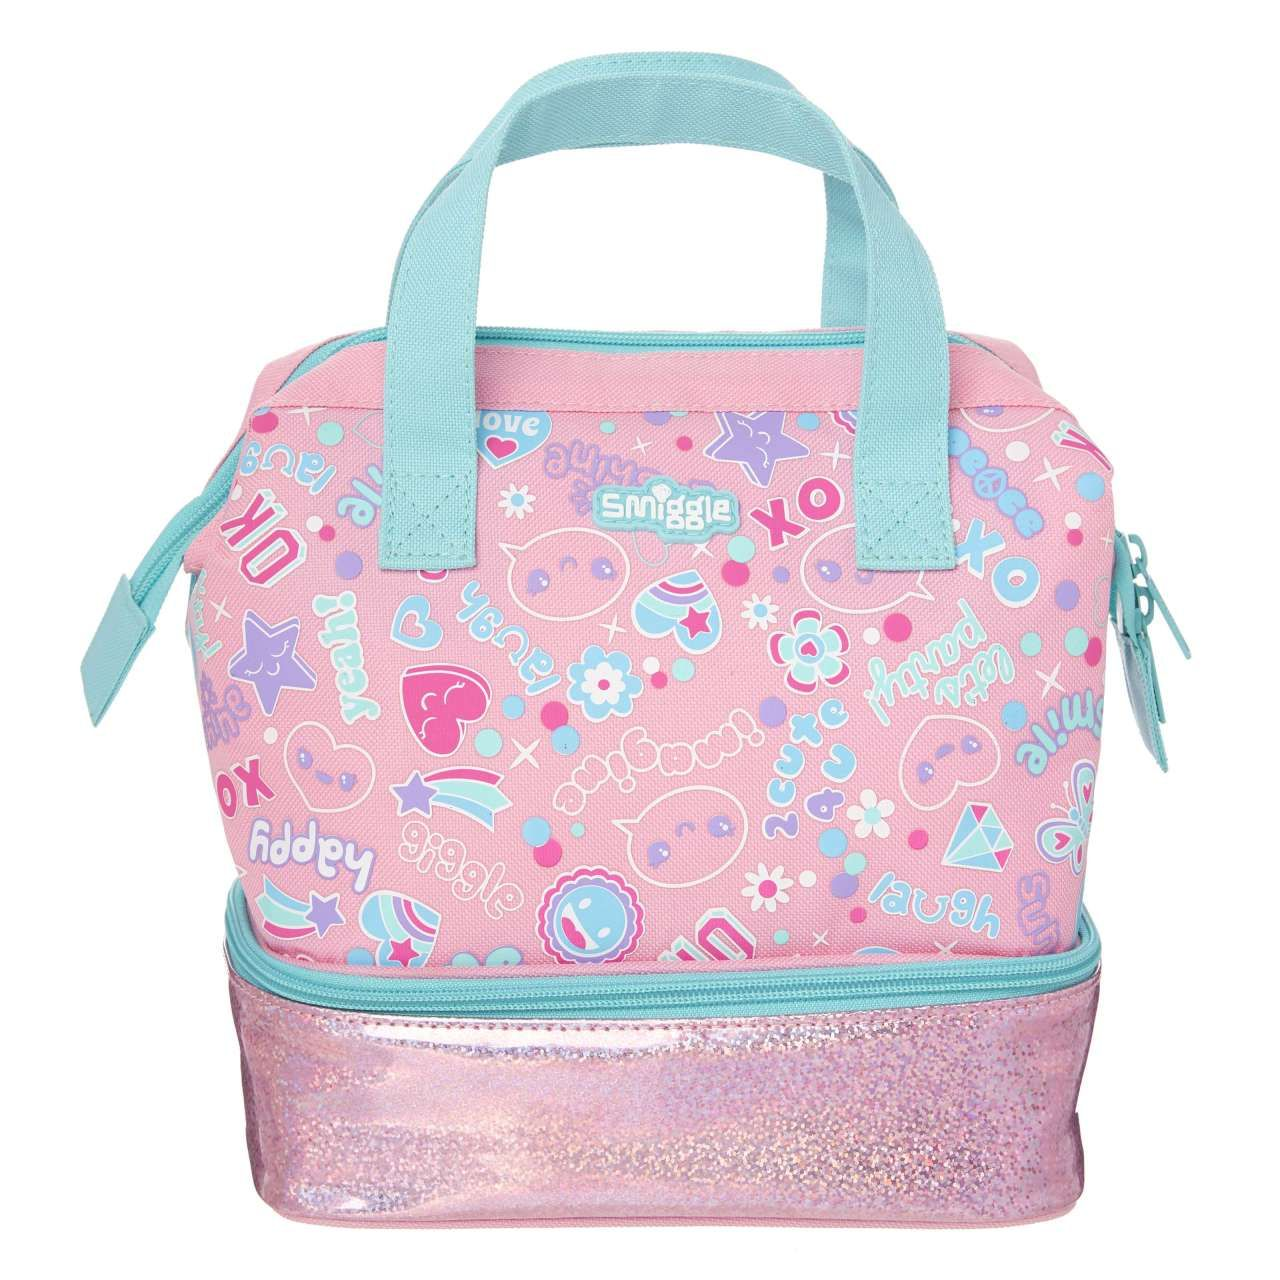 Open Up Lunch Box Pink Smiggle Online | Girls rolling